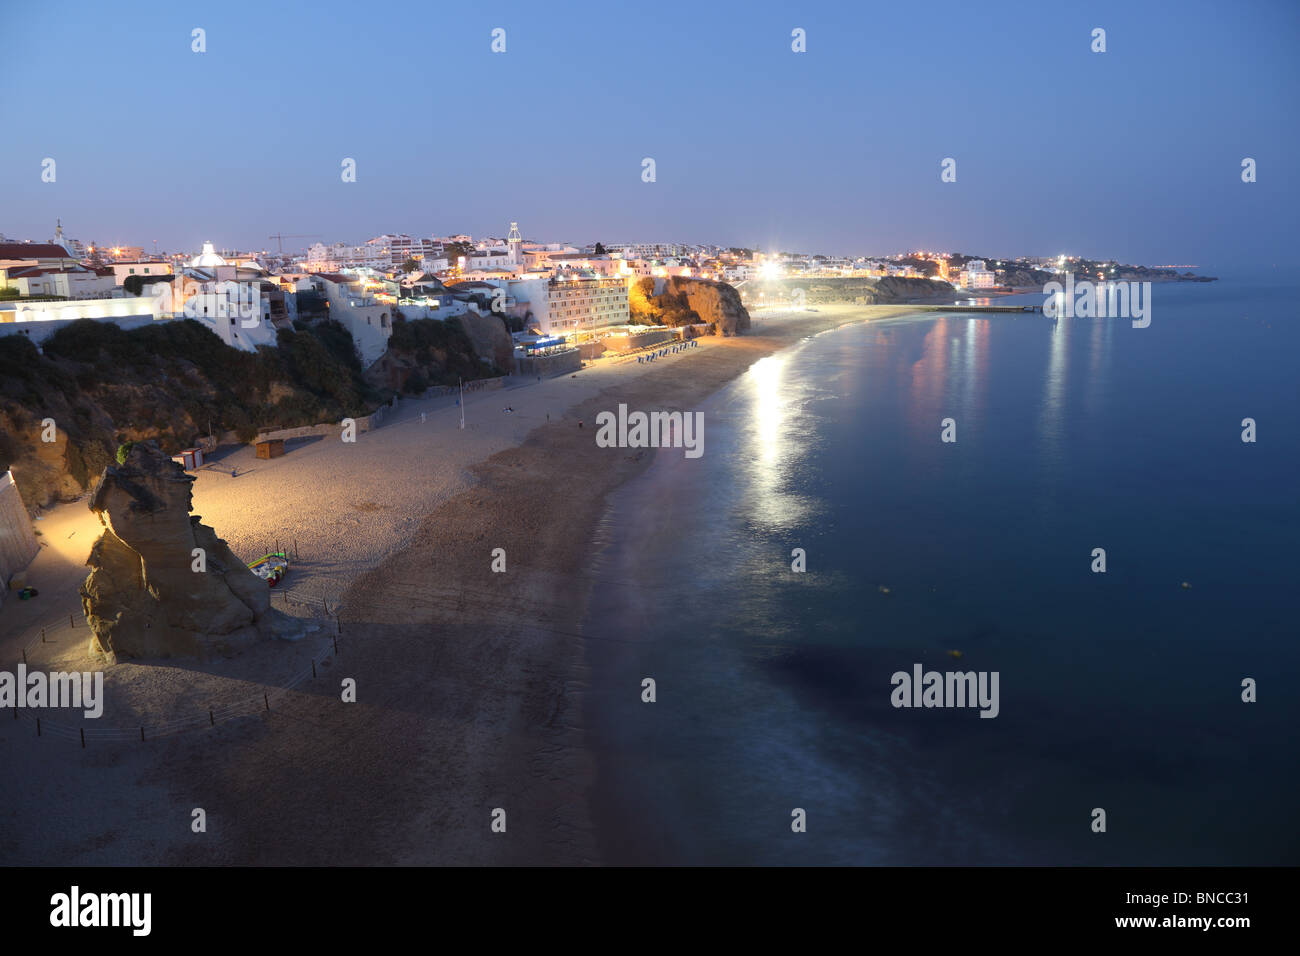 Atlantic coast and beach at Albufeira in Algarve, Portugal Stock Photo